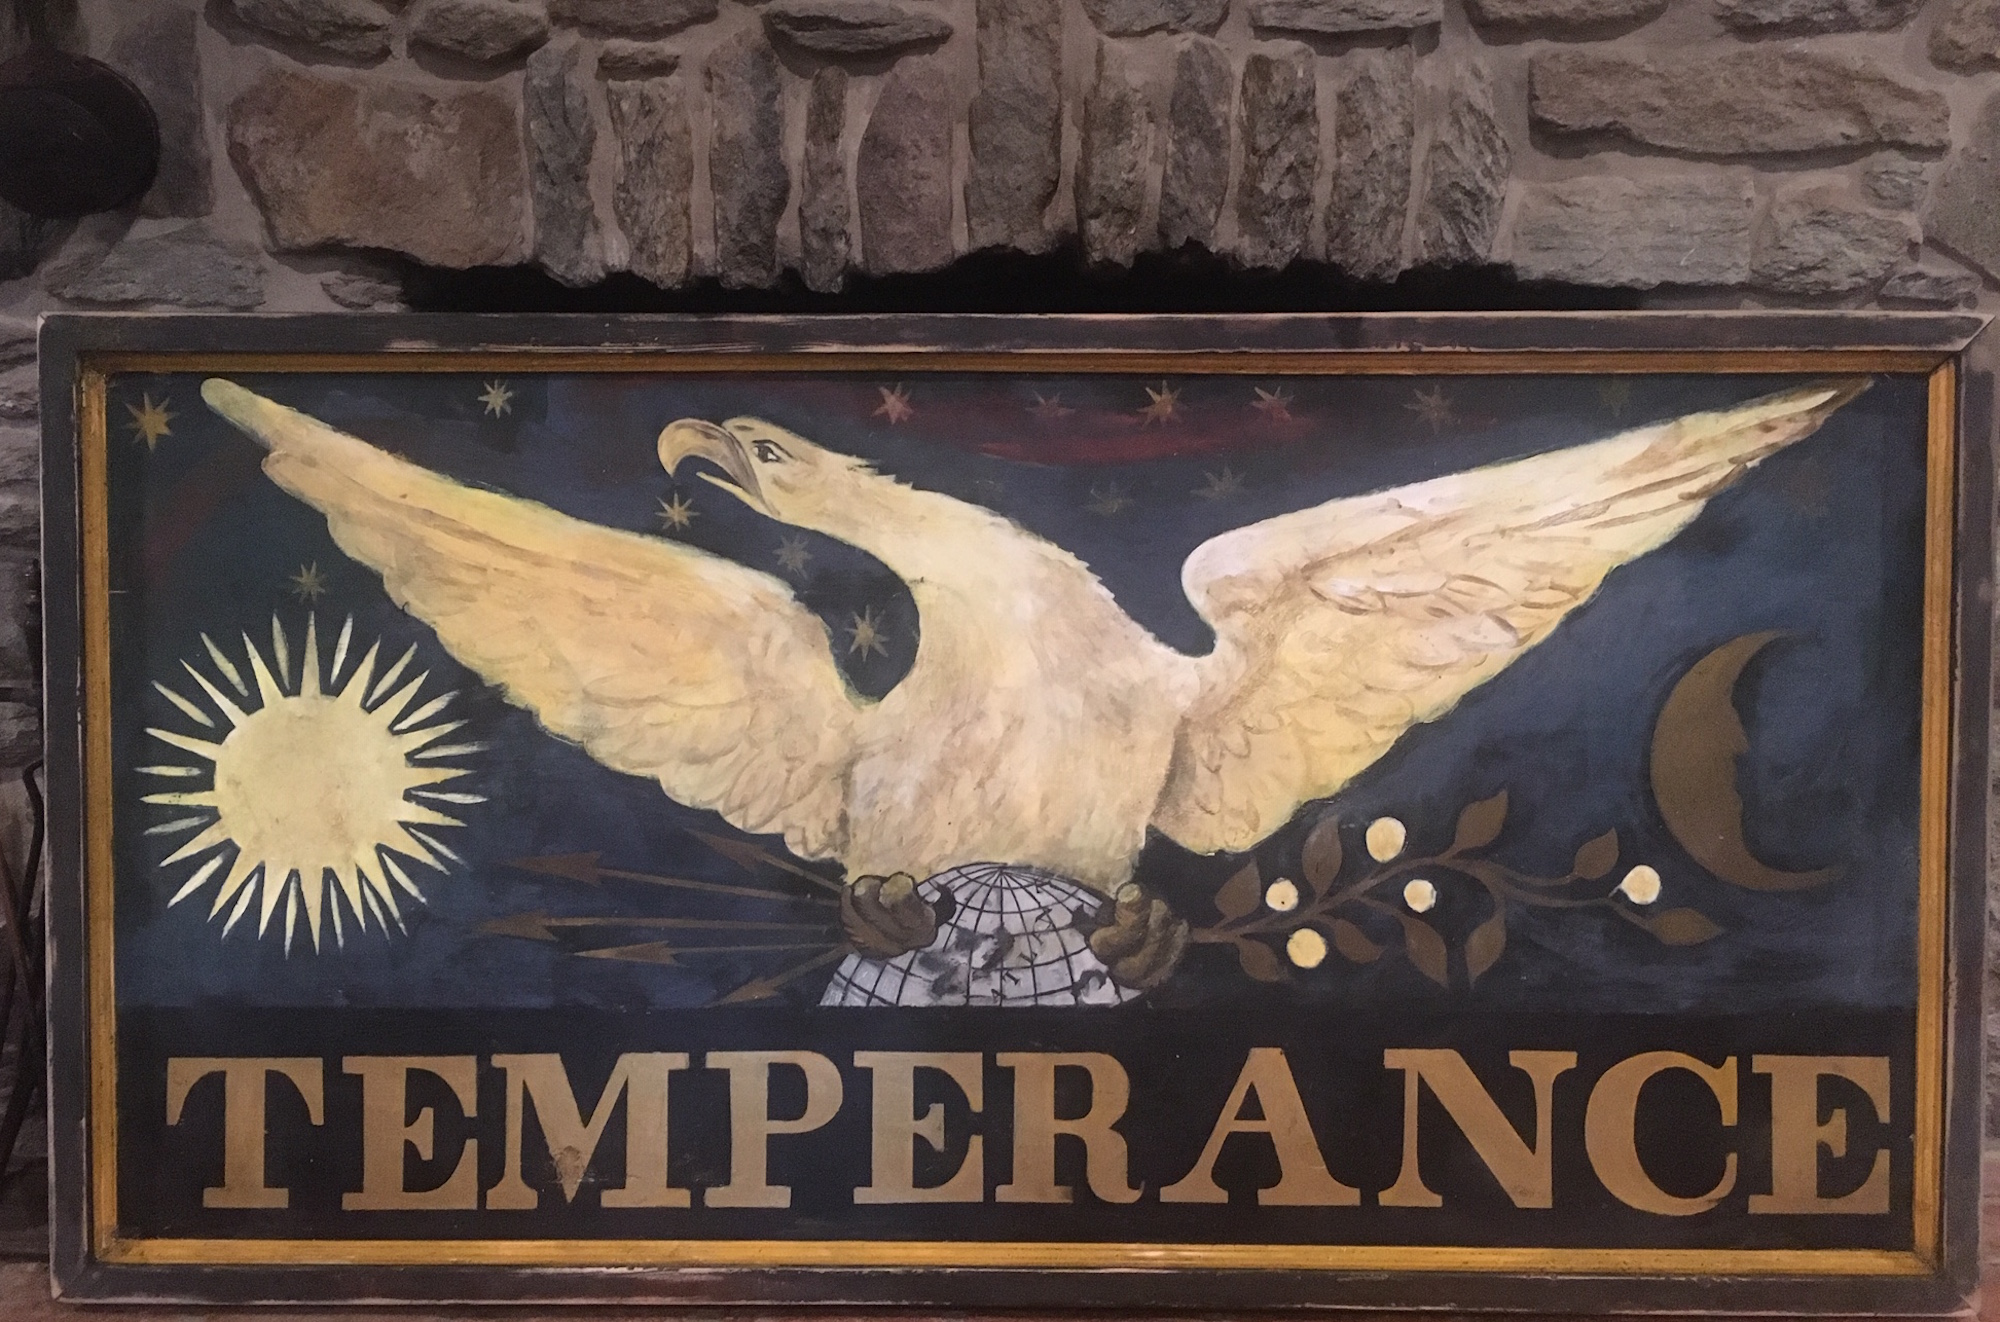 temperance eagle_large version_colonial american sign company2.JPG